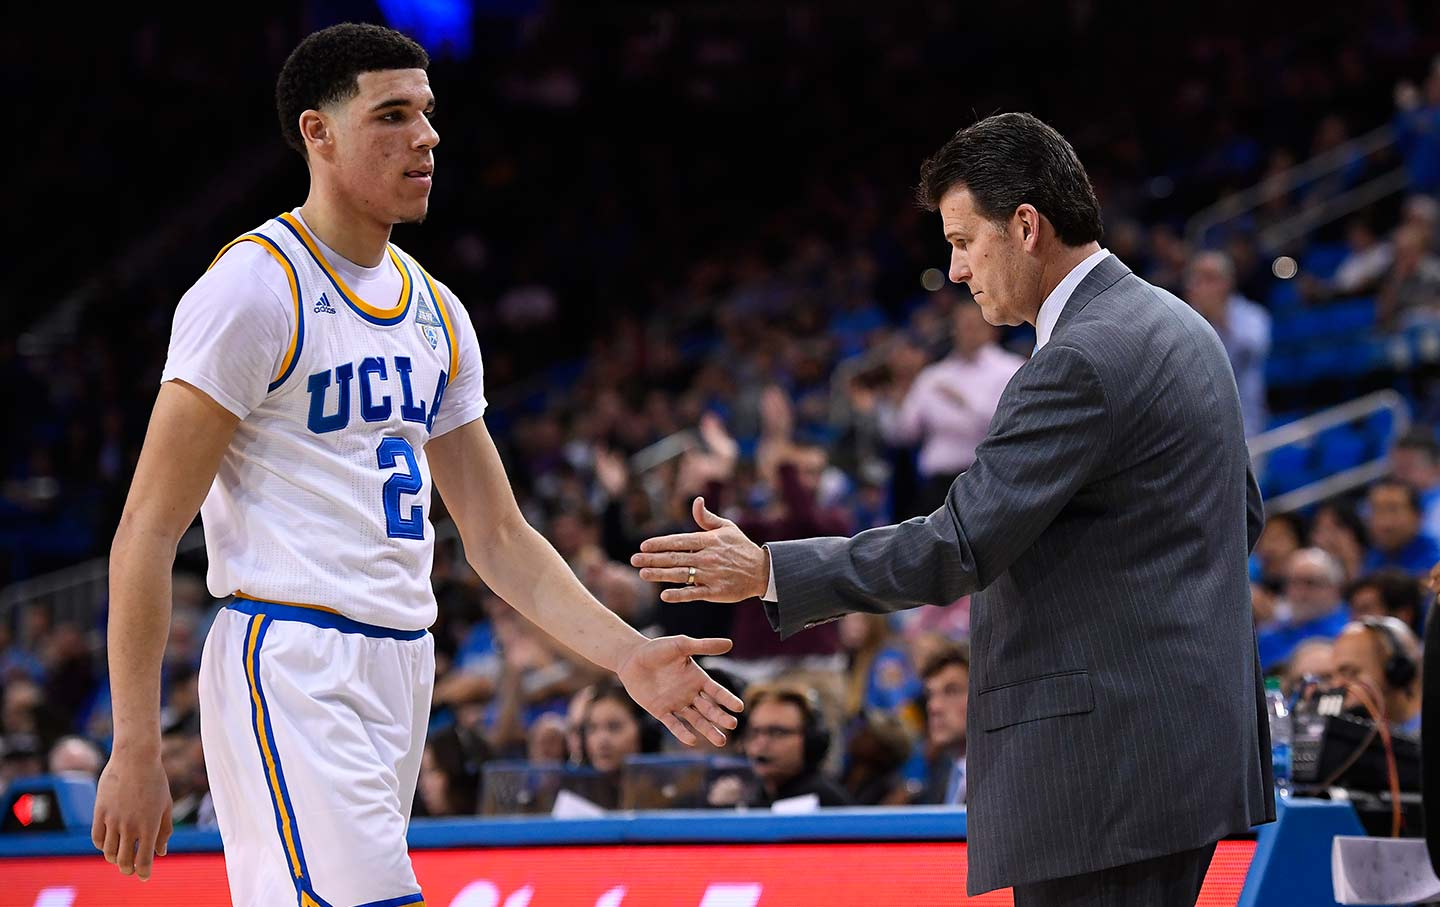 March Madness 2017: UCLA Gets the Number 3 Seed in the South